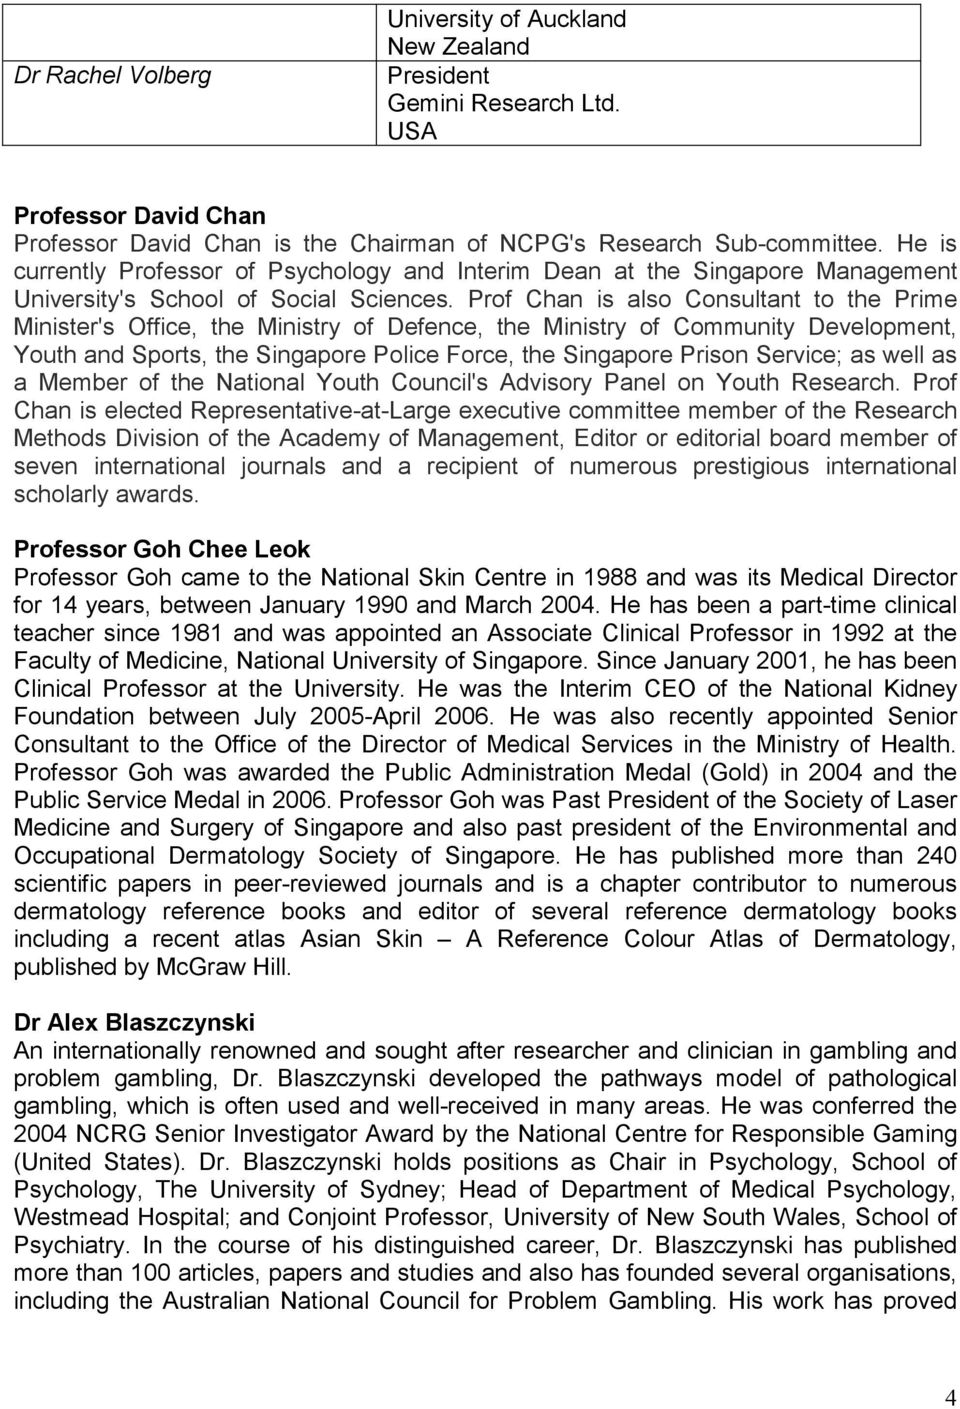 Prof Chan is also Consultant to the Prime Minister's Office, the Ministry of Defence, the Ministry of Community Development, Youth and Sports, the Singapore Police Force, the Singapore Prison